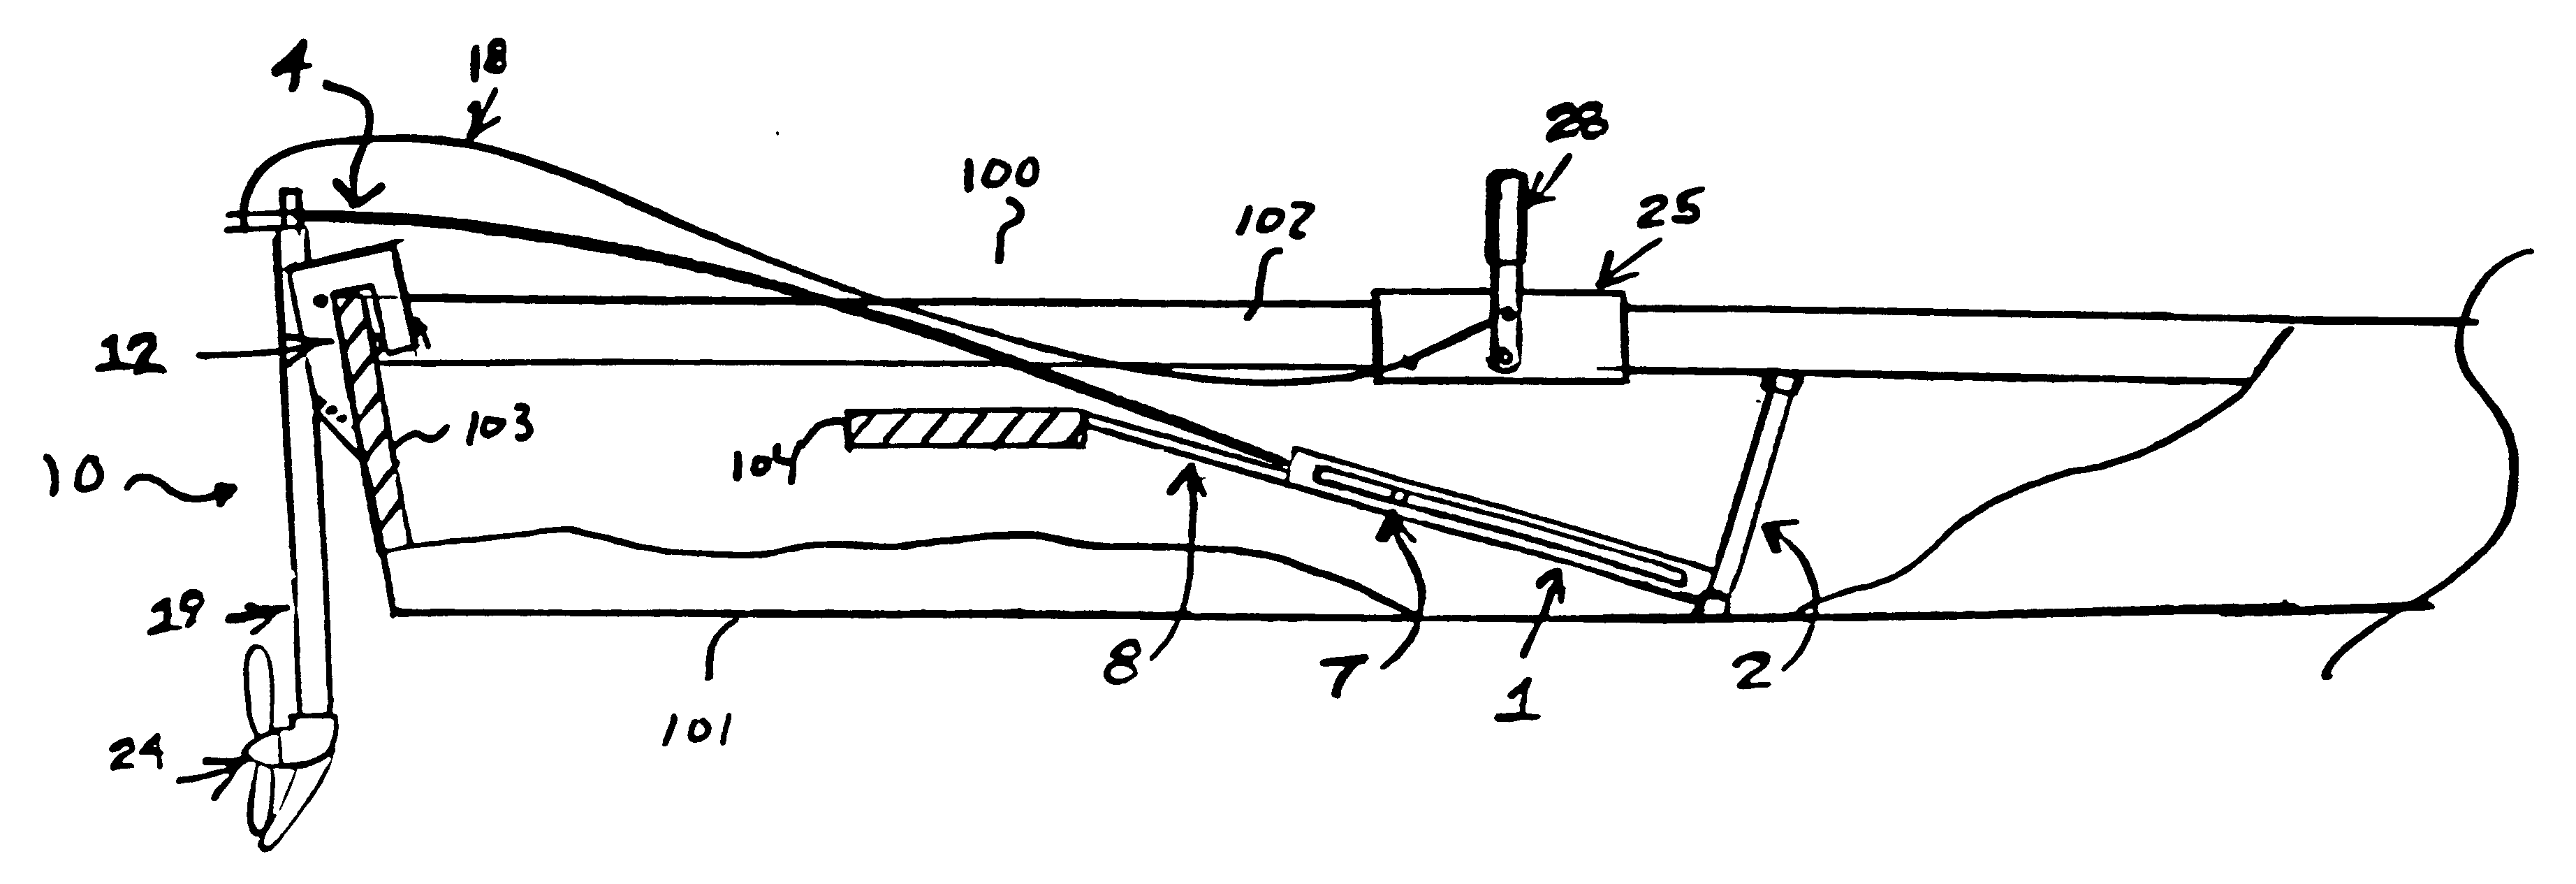 Patent Us6171157 Pedal Powered Boat Motor Google Patents